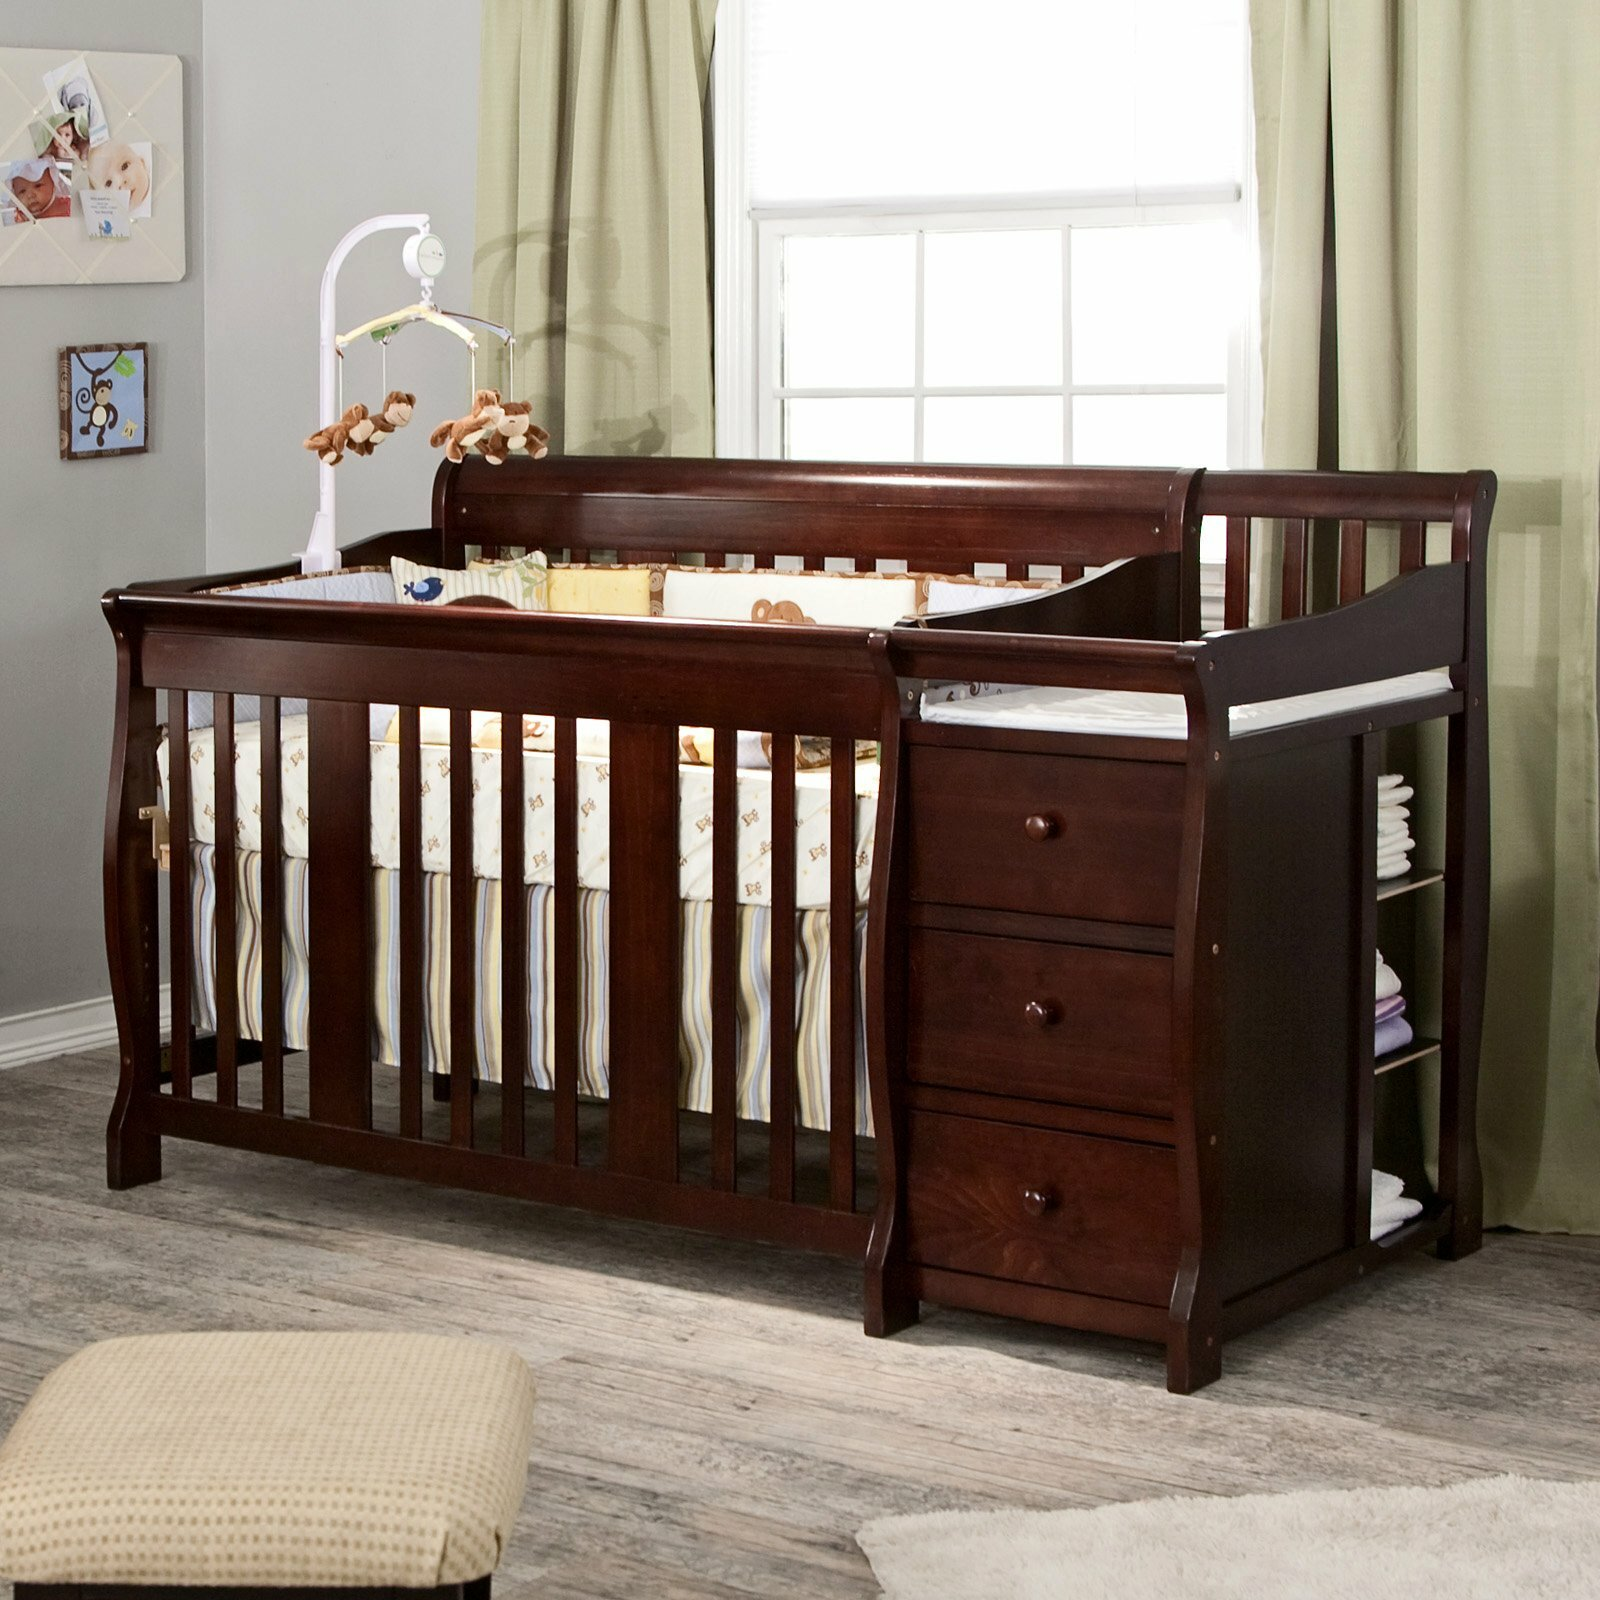 bed a the convertible little toddler baby changer fosterboyspizza size cheap dresser and pretty changing ideas plus perfect table of inspirational with full constructed multipurpose rugged crib is